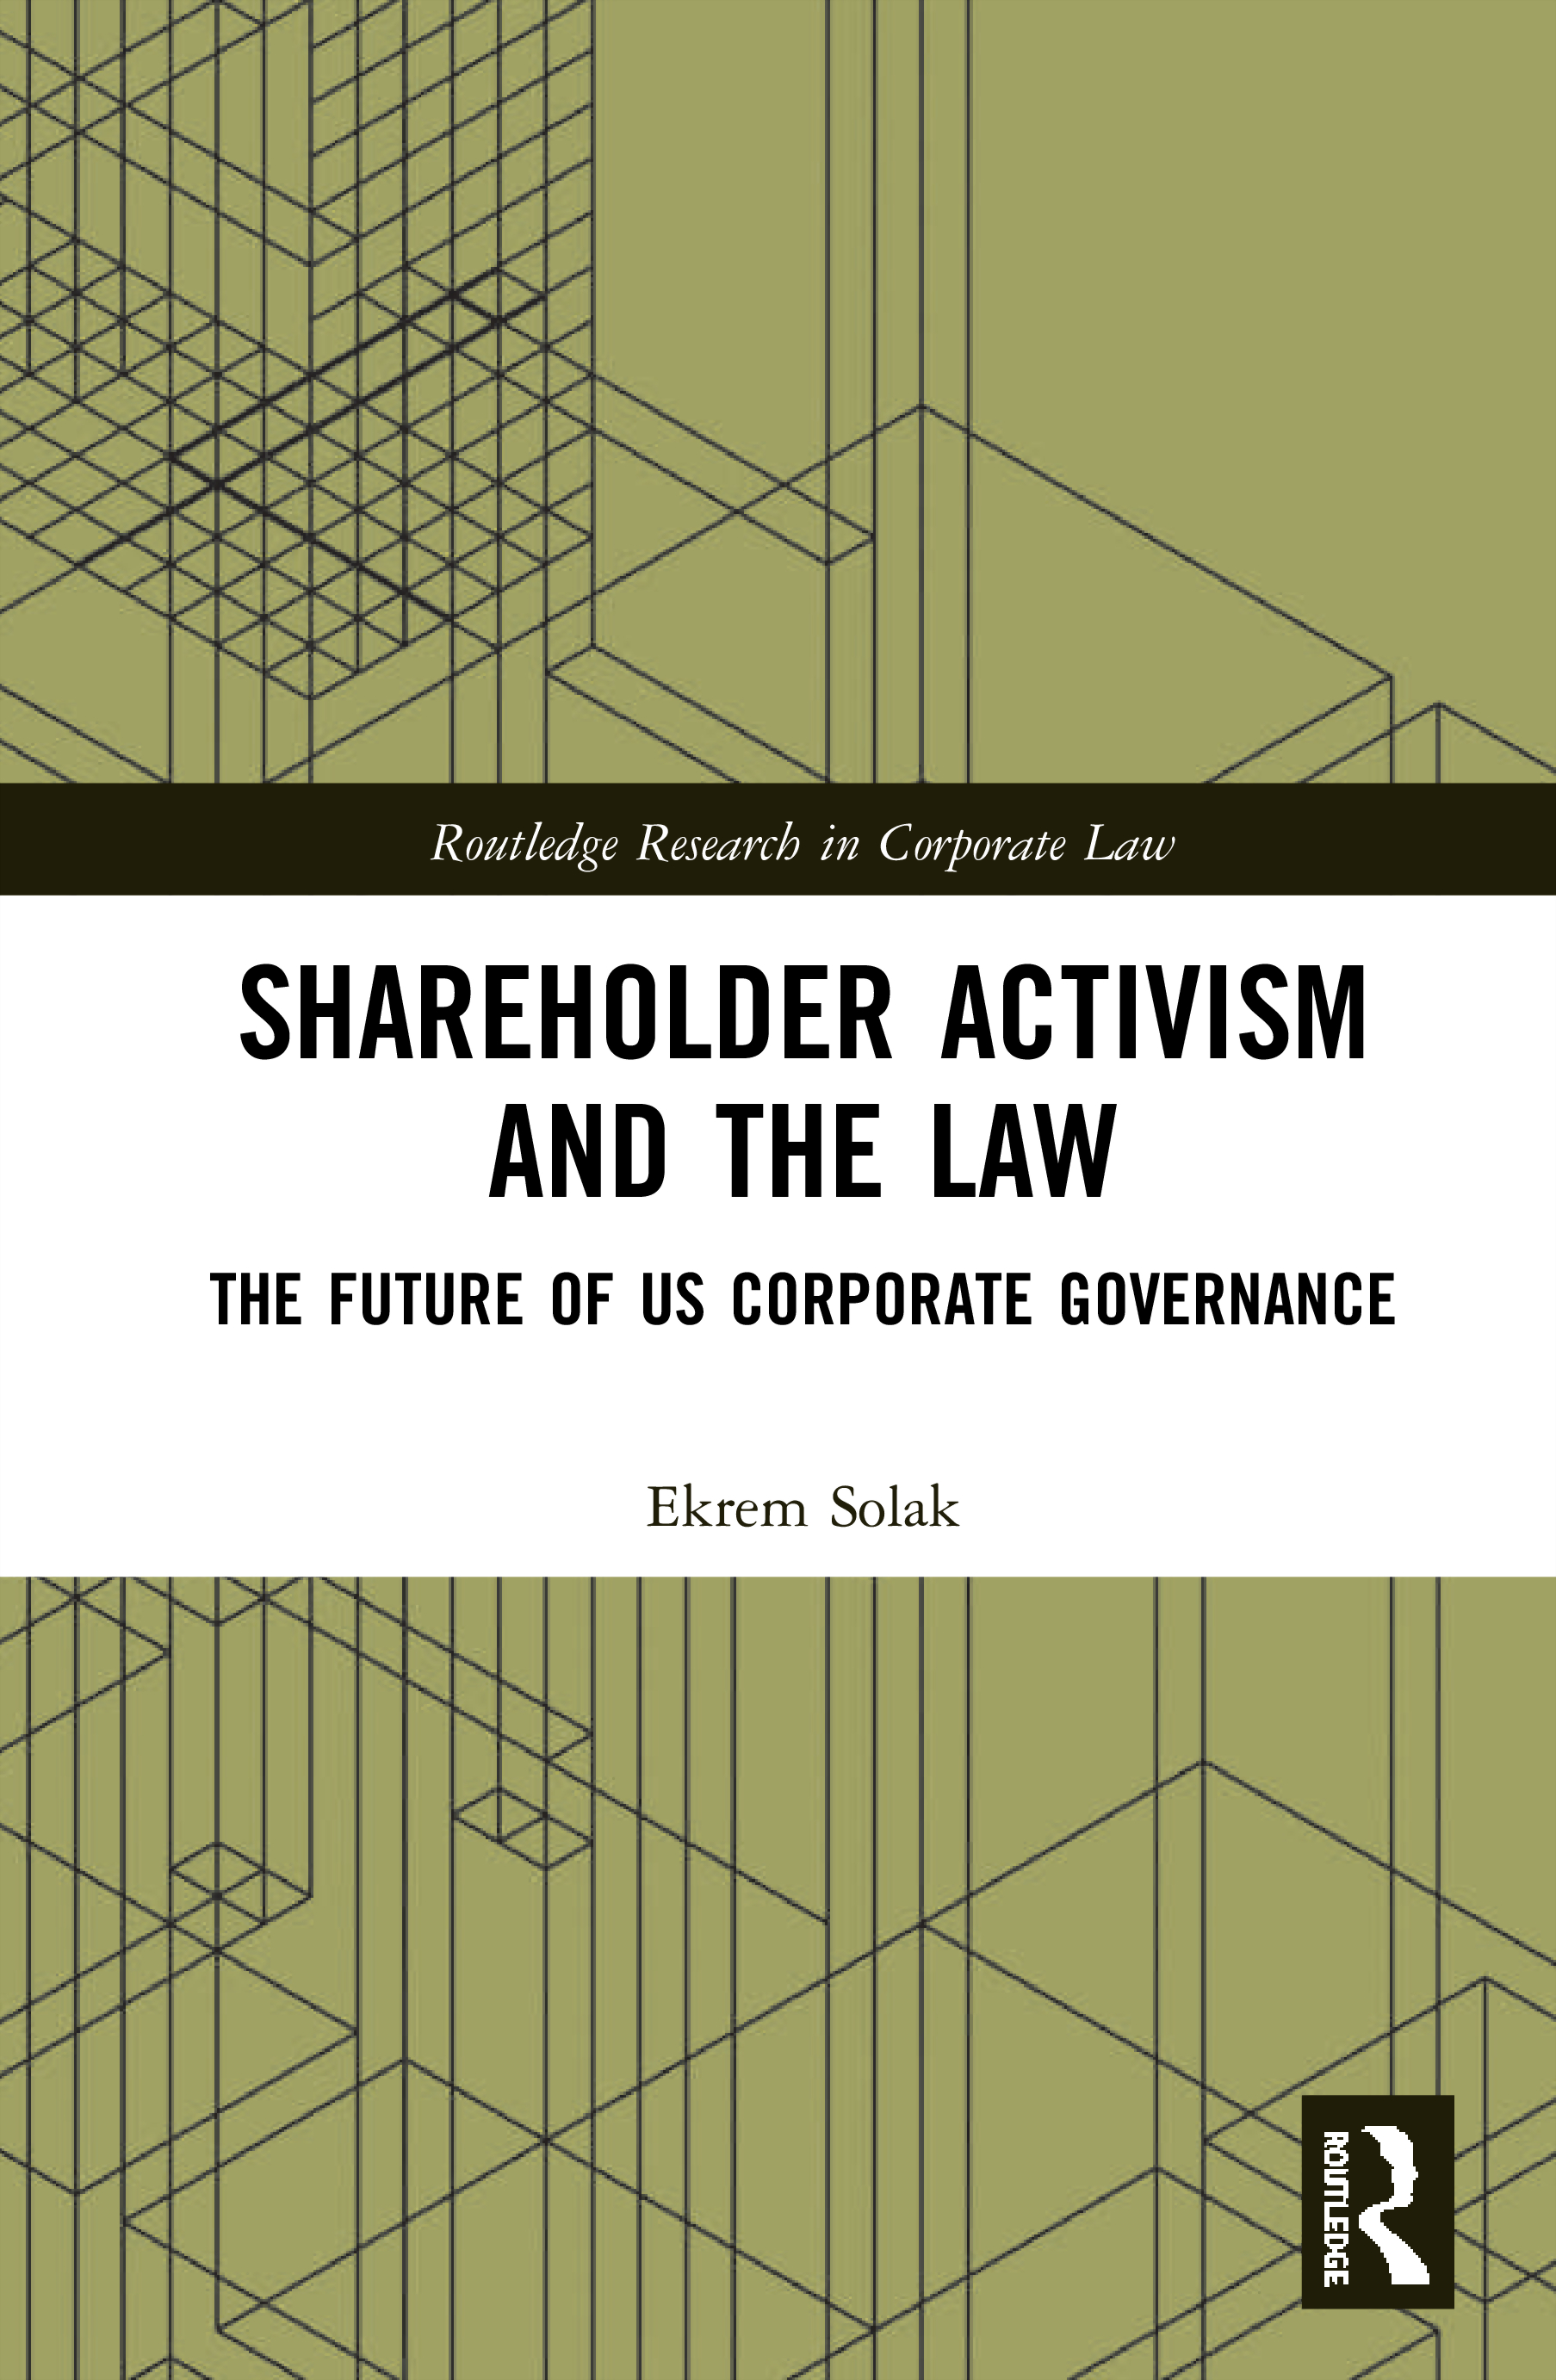 Shareholder Activism and the Law: The Future of US Corporate Governance book cover